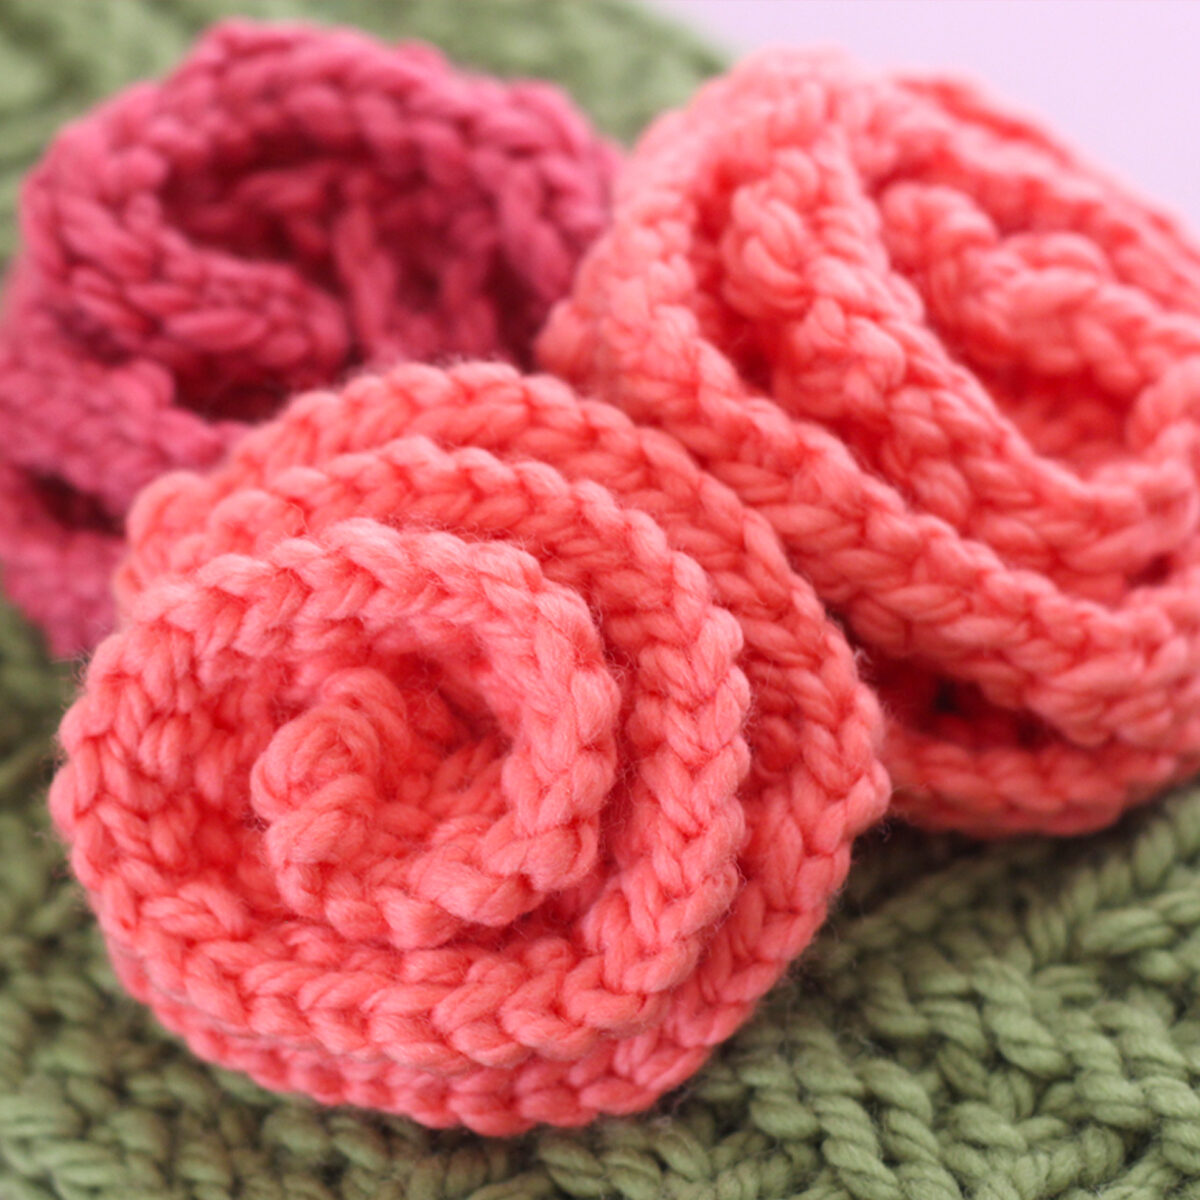 Knitted Rose shapes in peach and pink color yarn